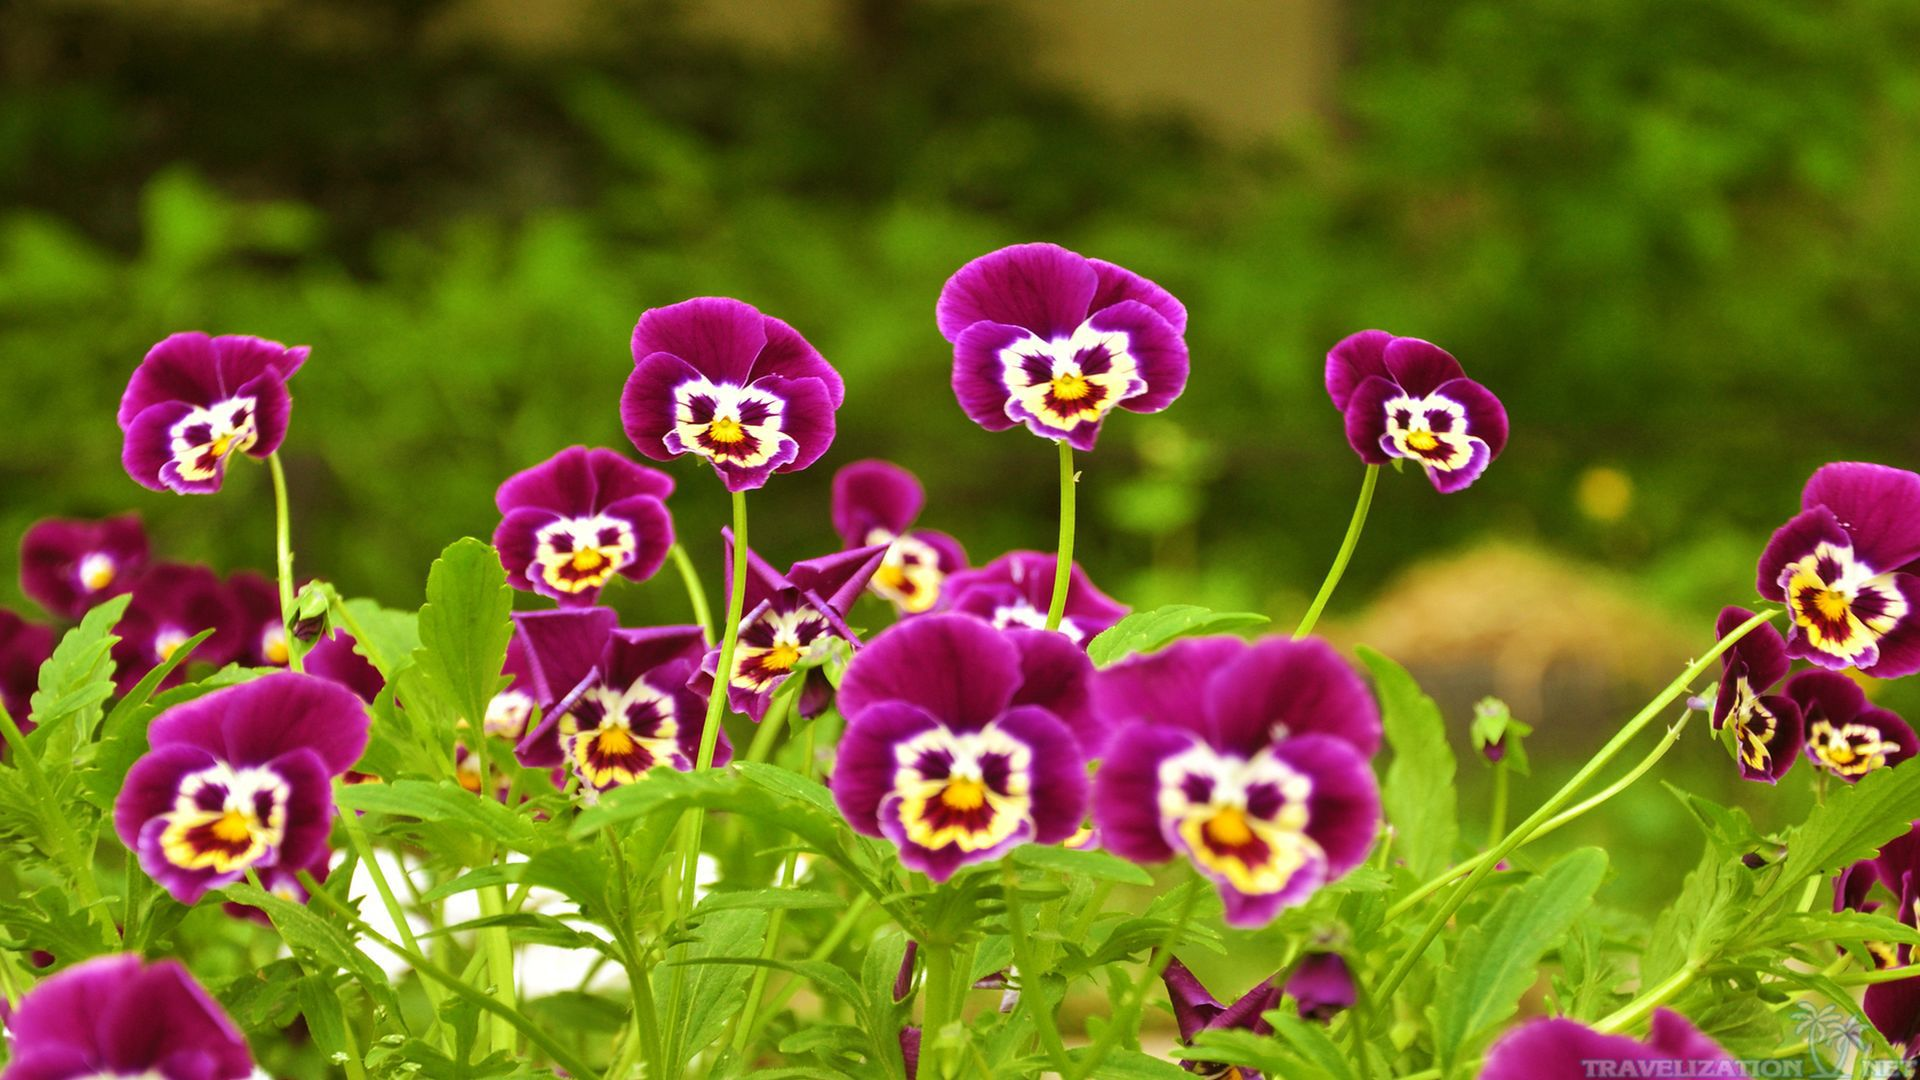 Group of flowers most beautiful top 10 most beautiful flowers in the world the mysterious world izmirmasajfo